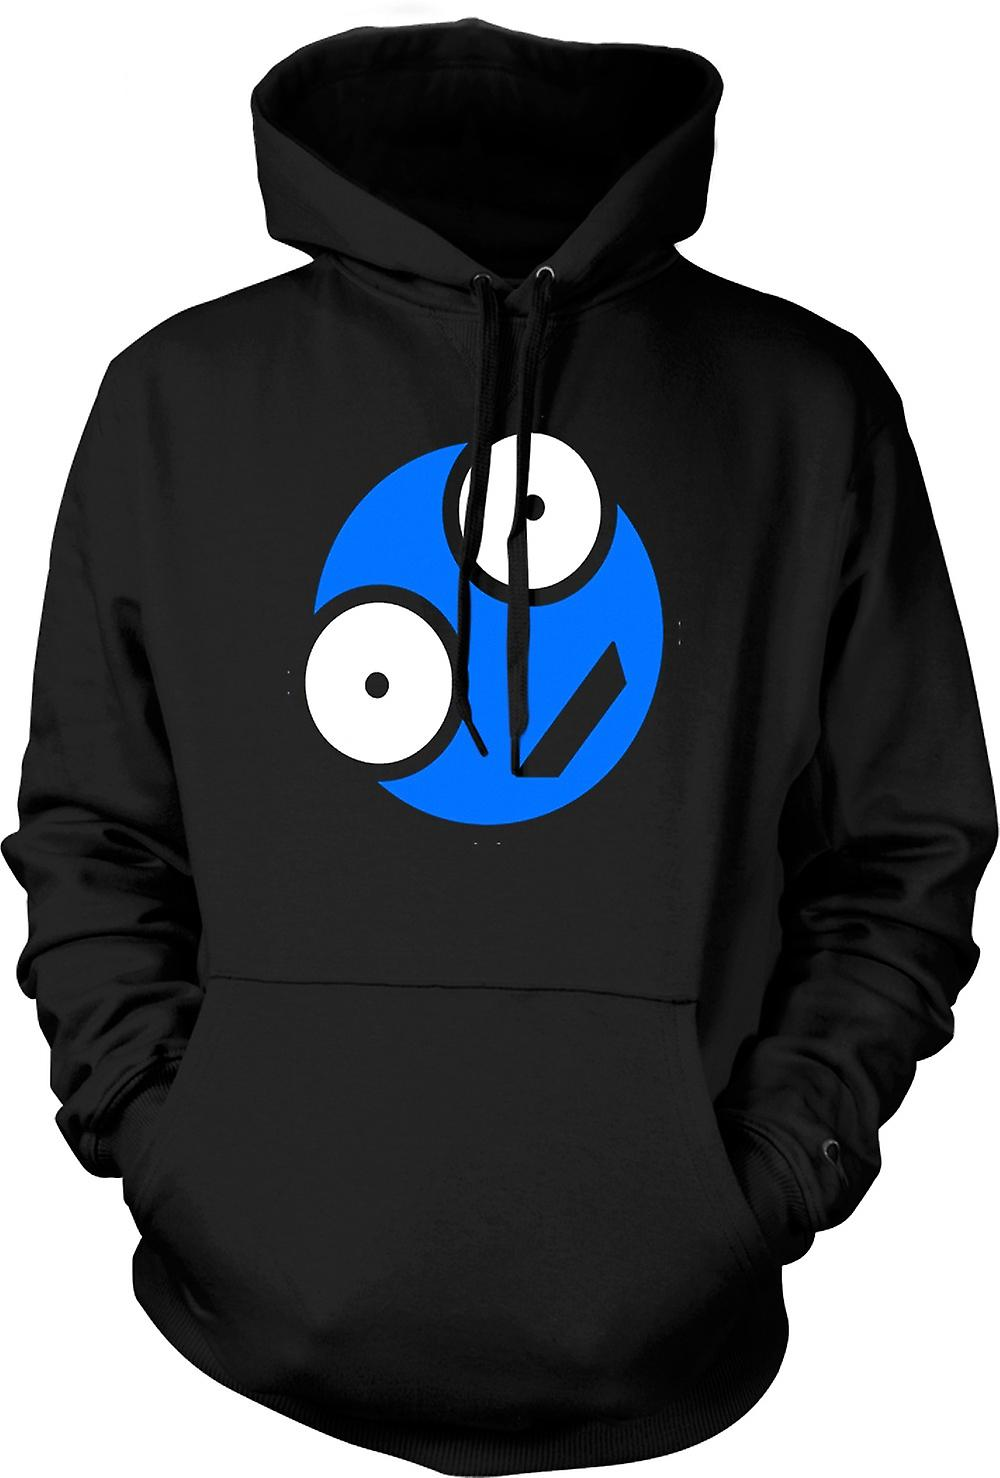 Mens Hoodie - Blue Smiley Face - Funny